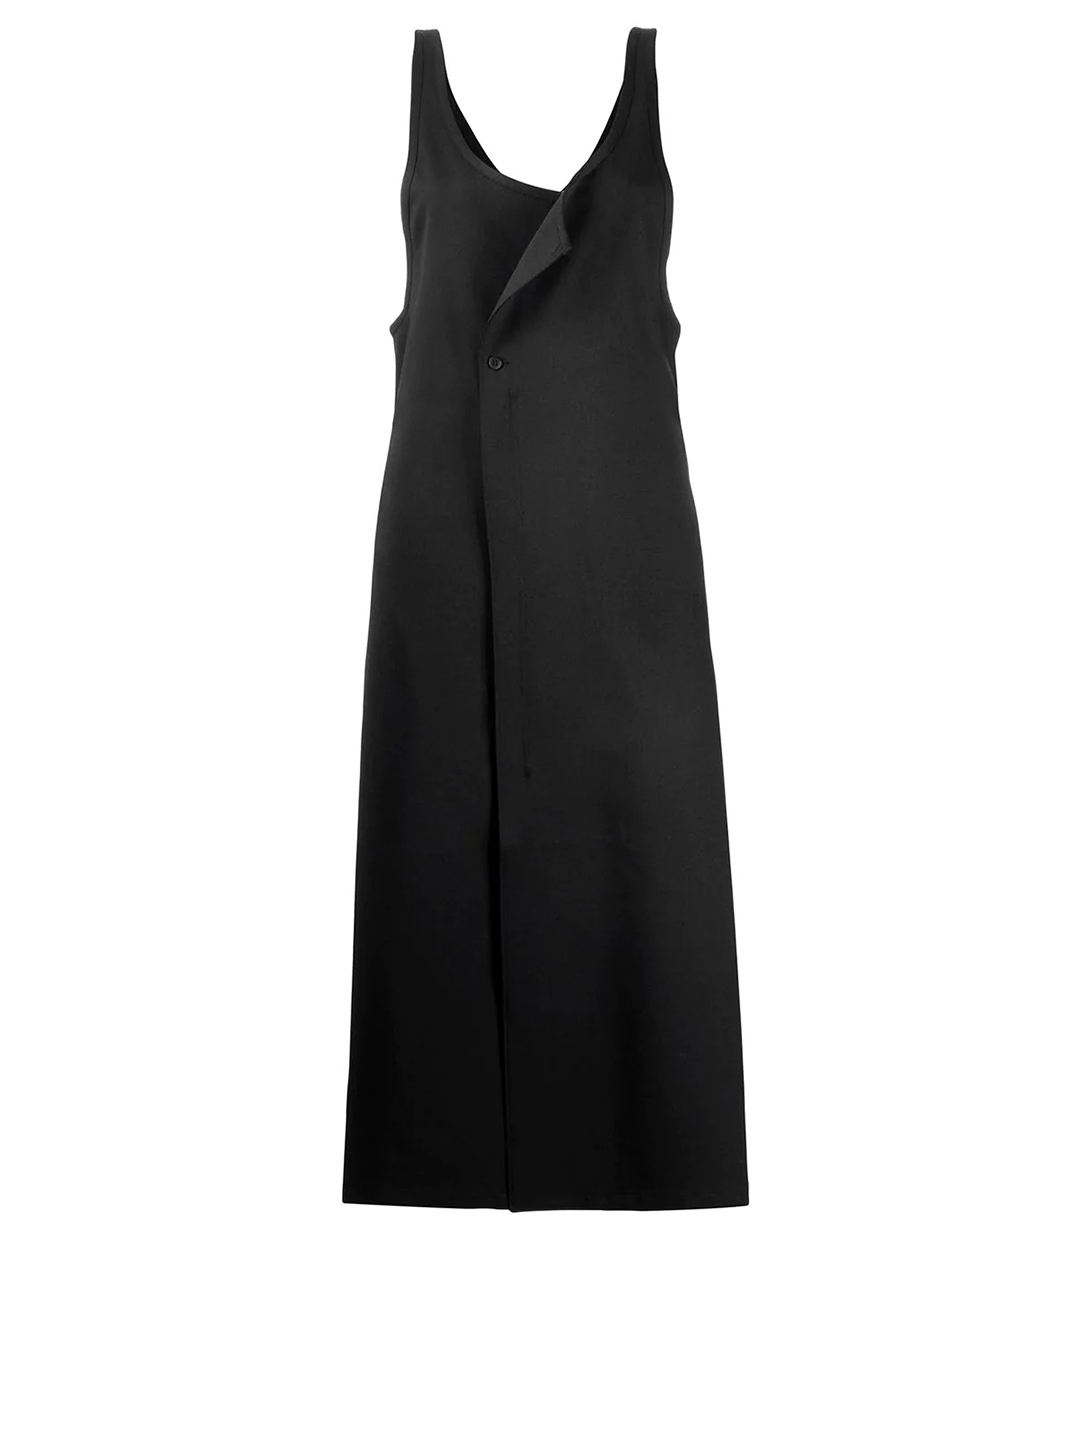 Y-3 Wool Blend Midi Dress Women's Black